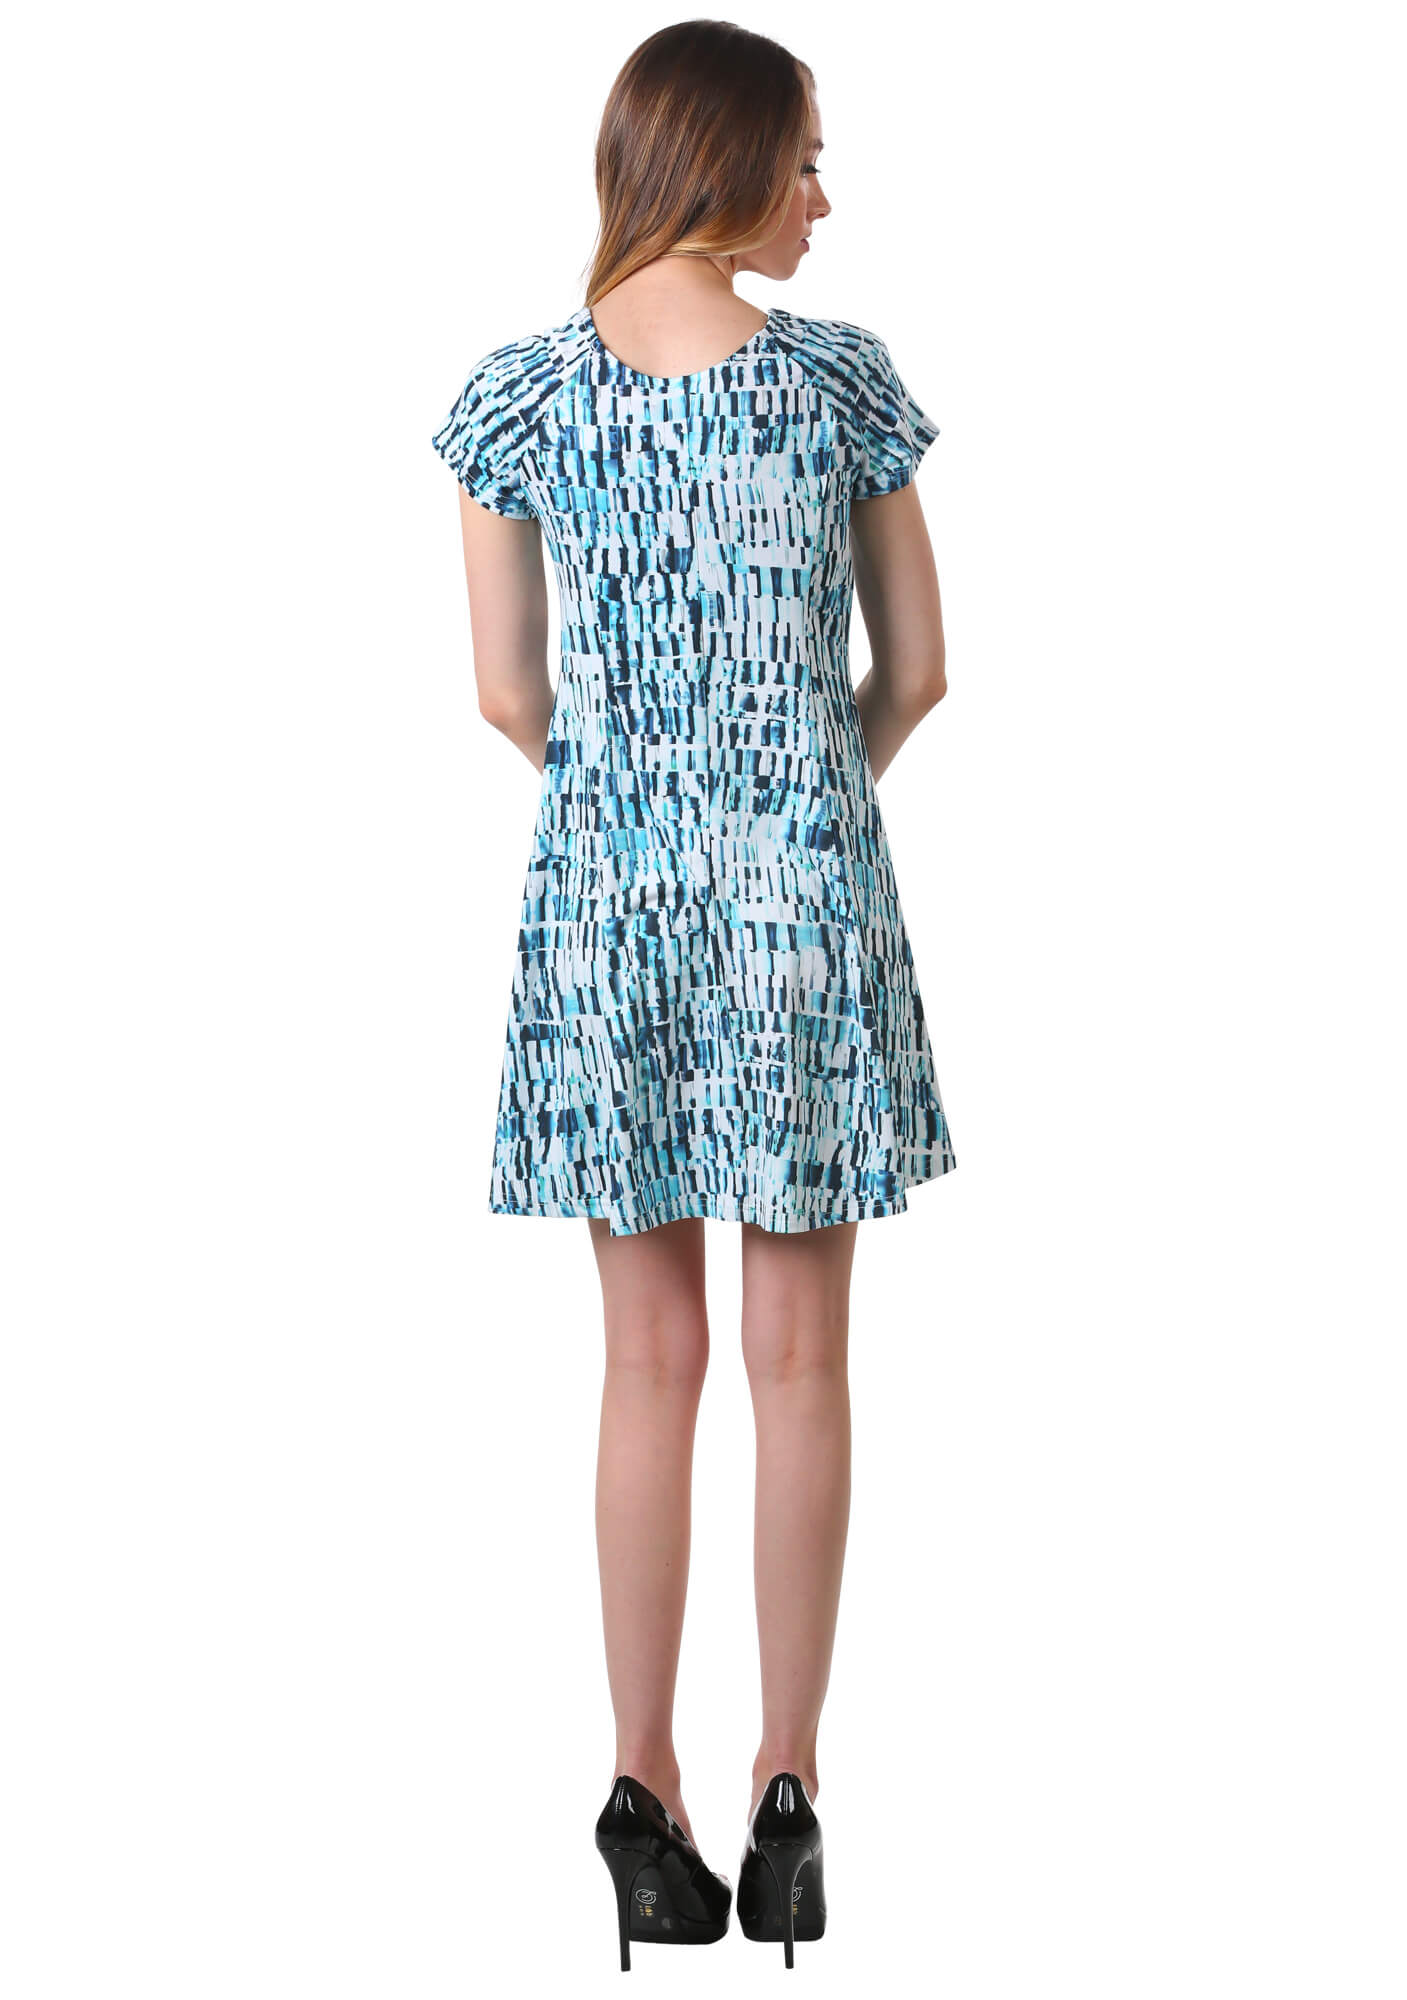 Printed Scoop Neck A Line Dress in Teal